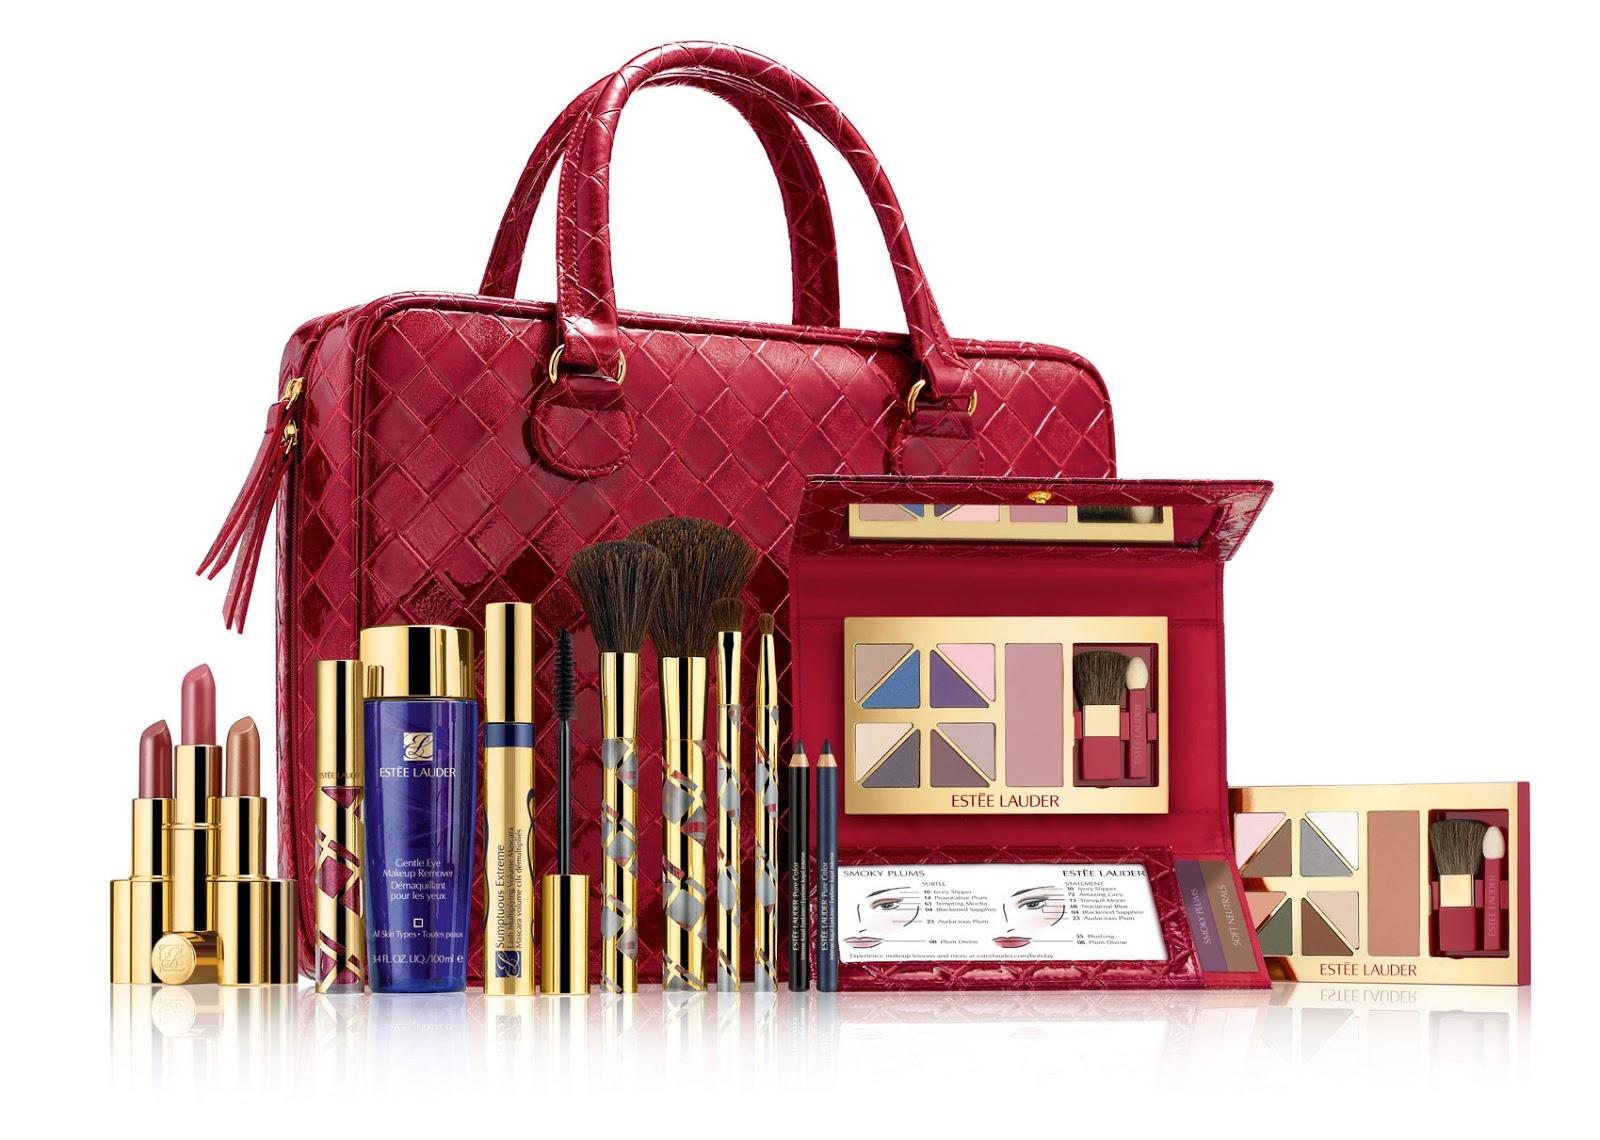 Available from among others, Myer, David Jones, and Estee Lauder online